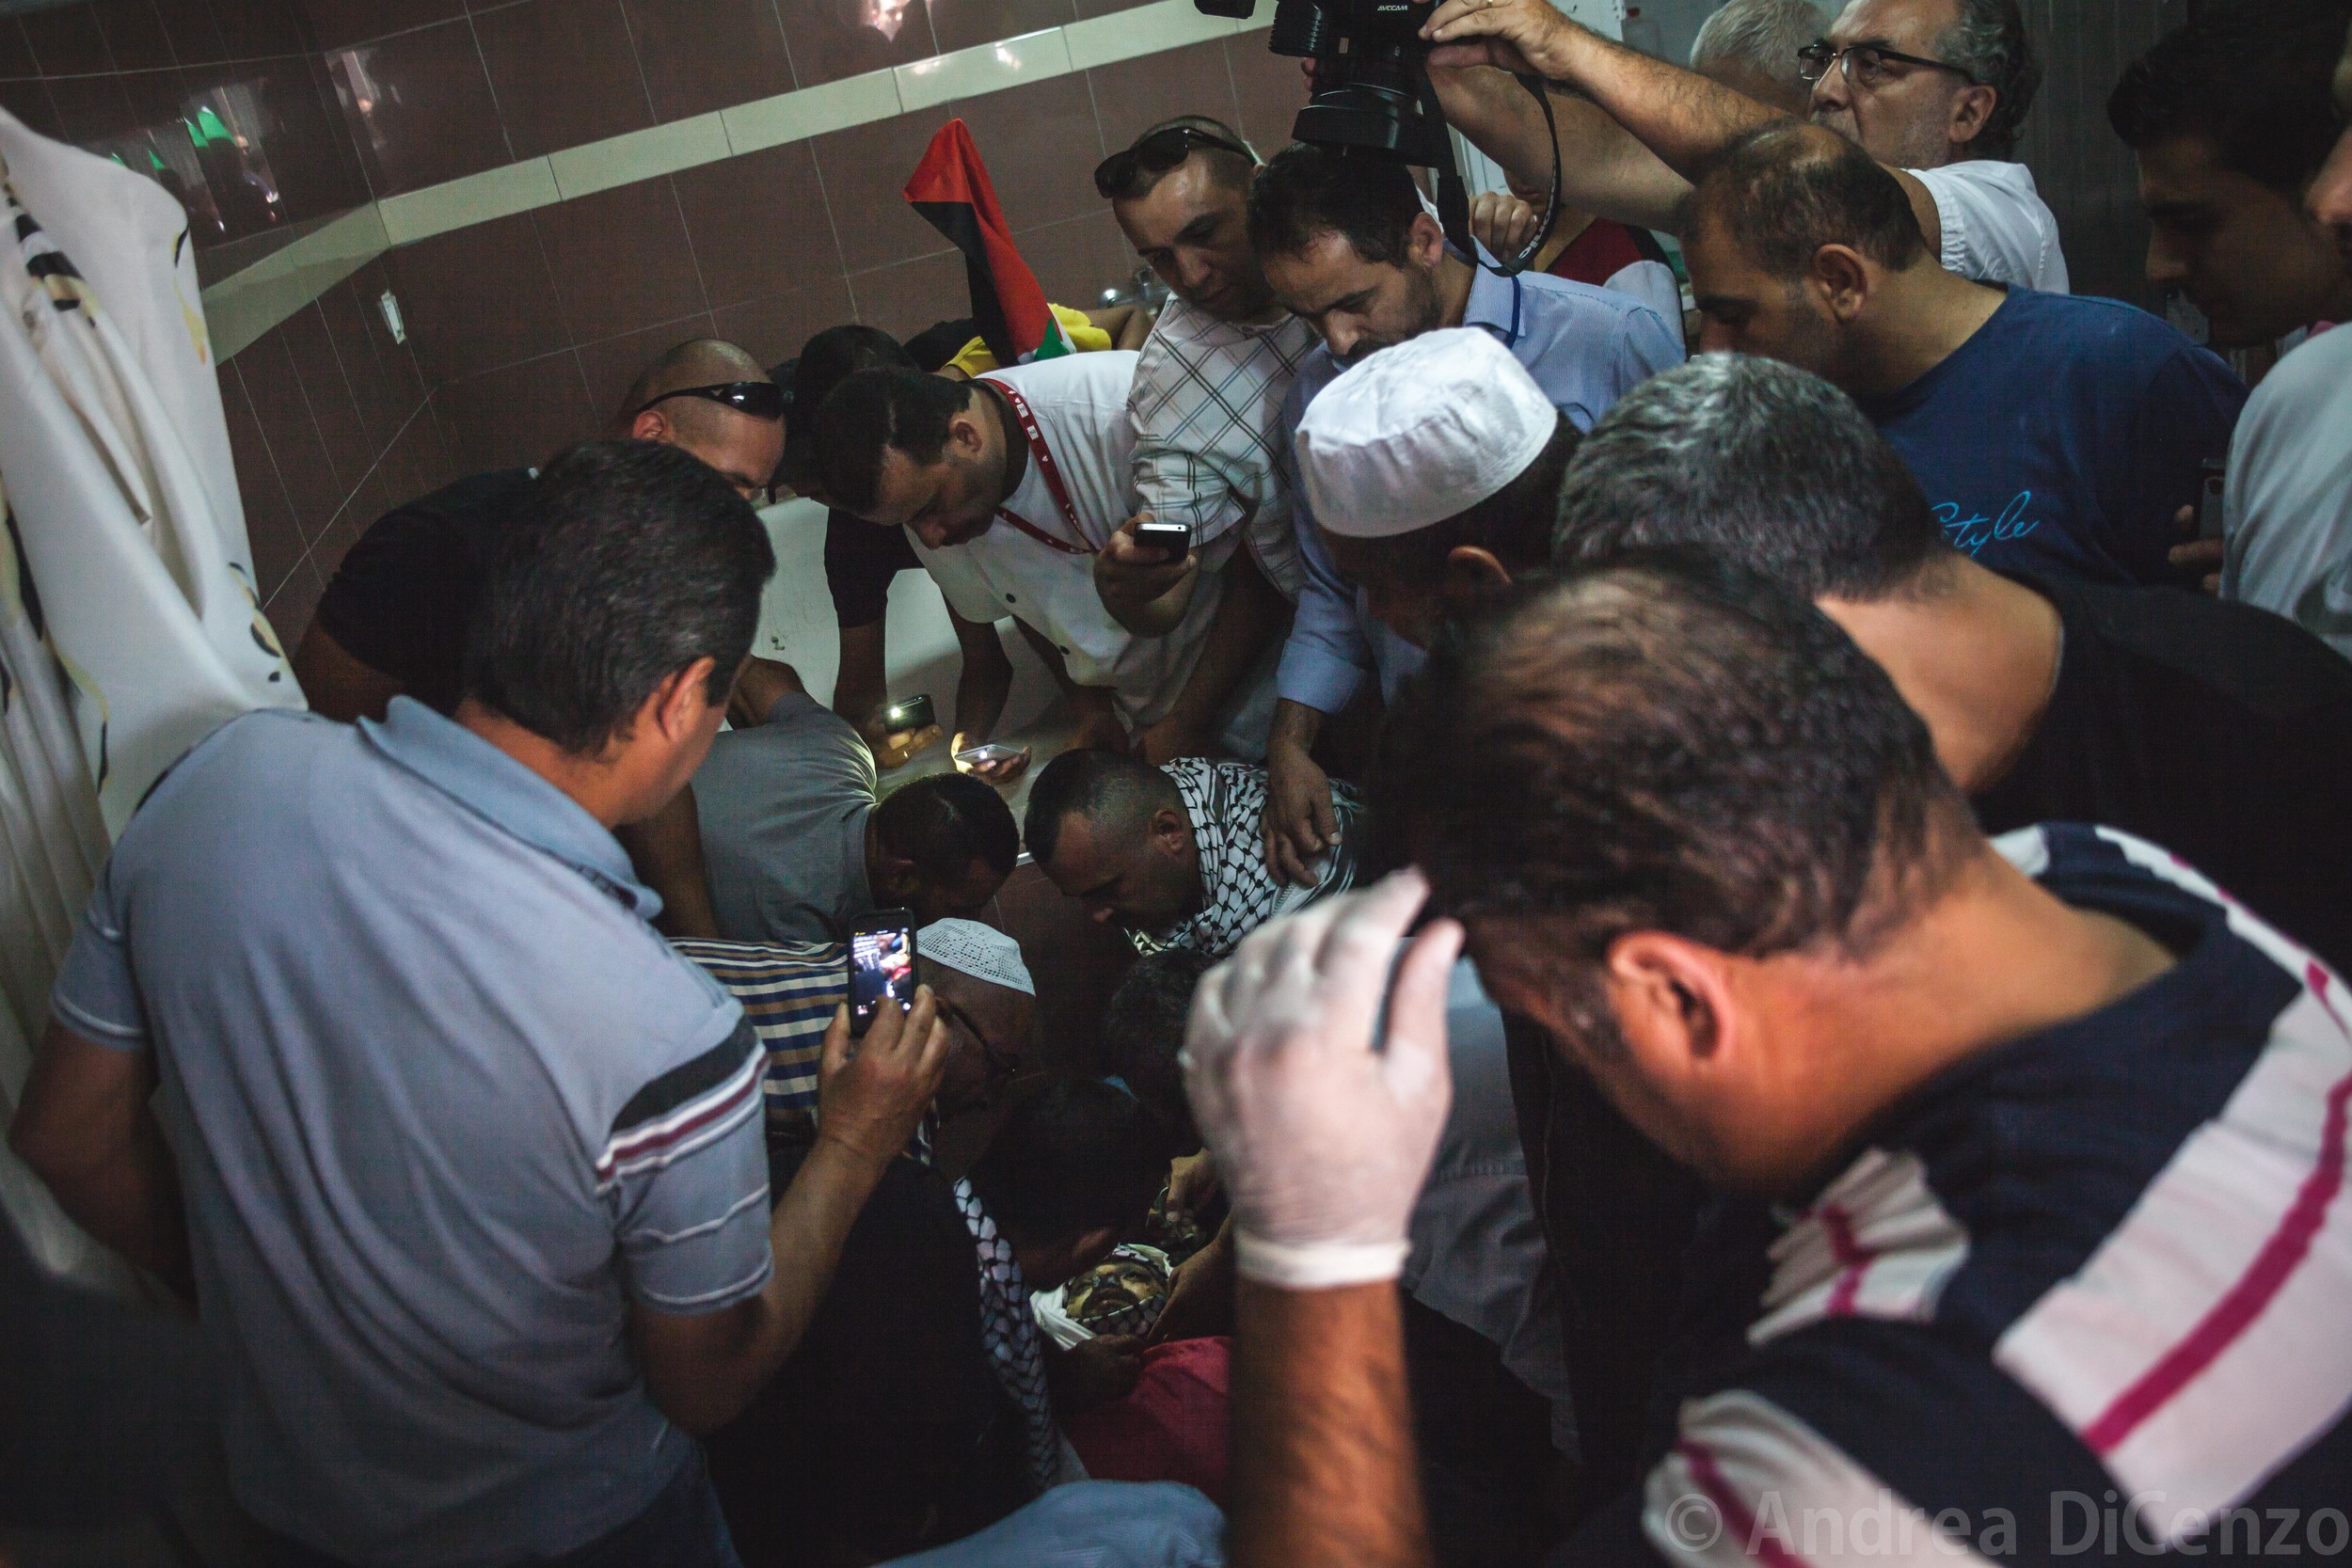 Mohammad is prepared for his funeral precession in Al MaKassed Hospital, East Jerusalem before his body is transported back to Gaza for burial. The Gazan came in at 3am but did not make it through the night.